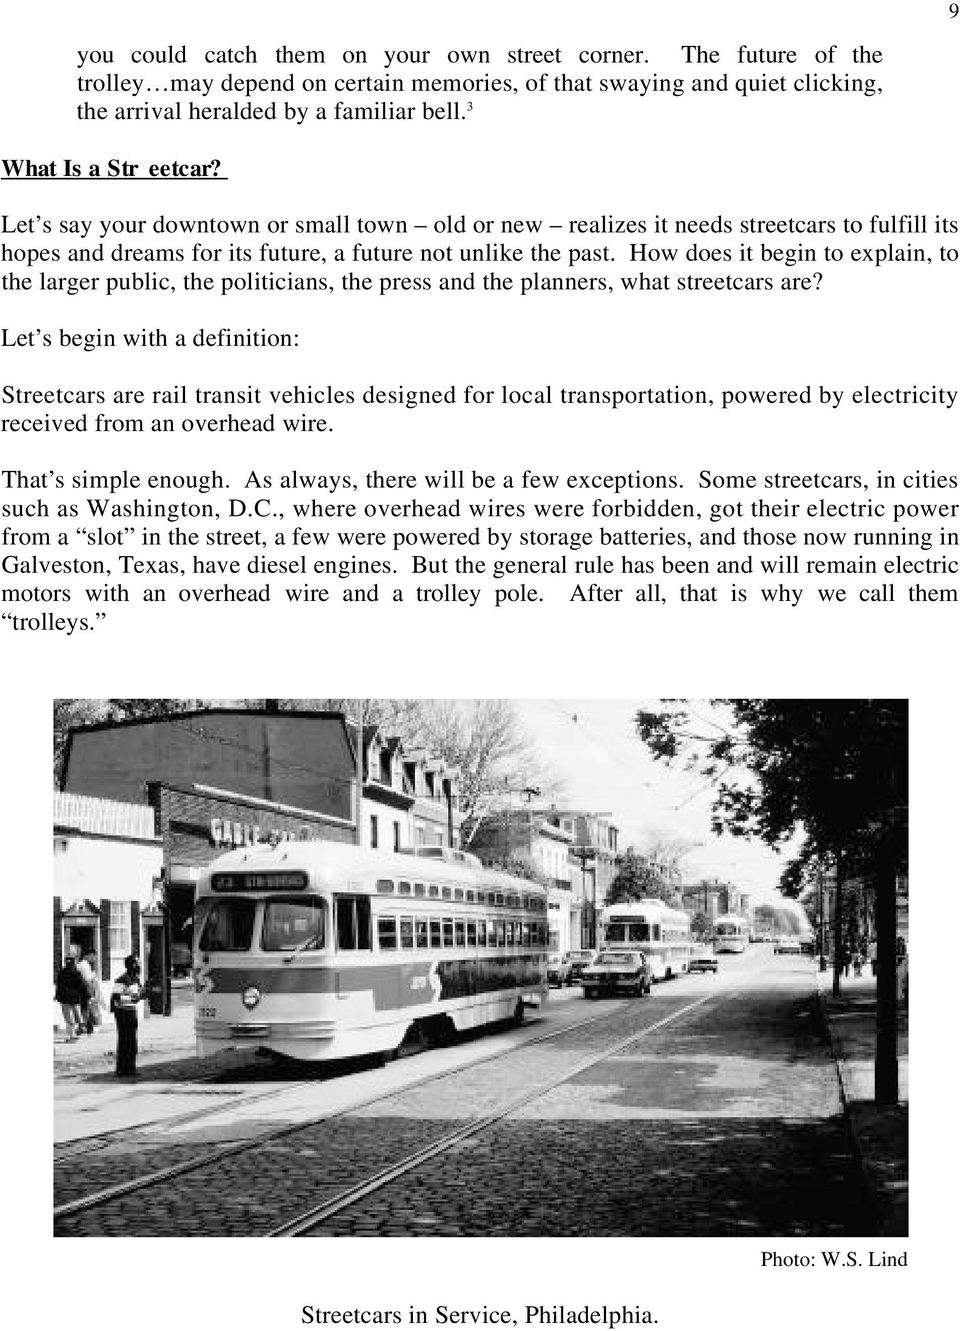 How does it begin to explain, to the larger public, the politicians, the press and the planners, what streetcars are?